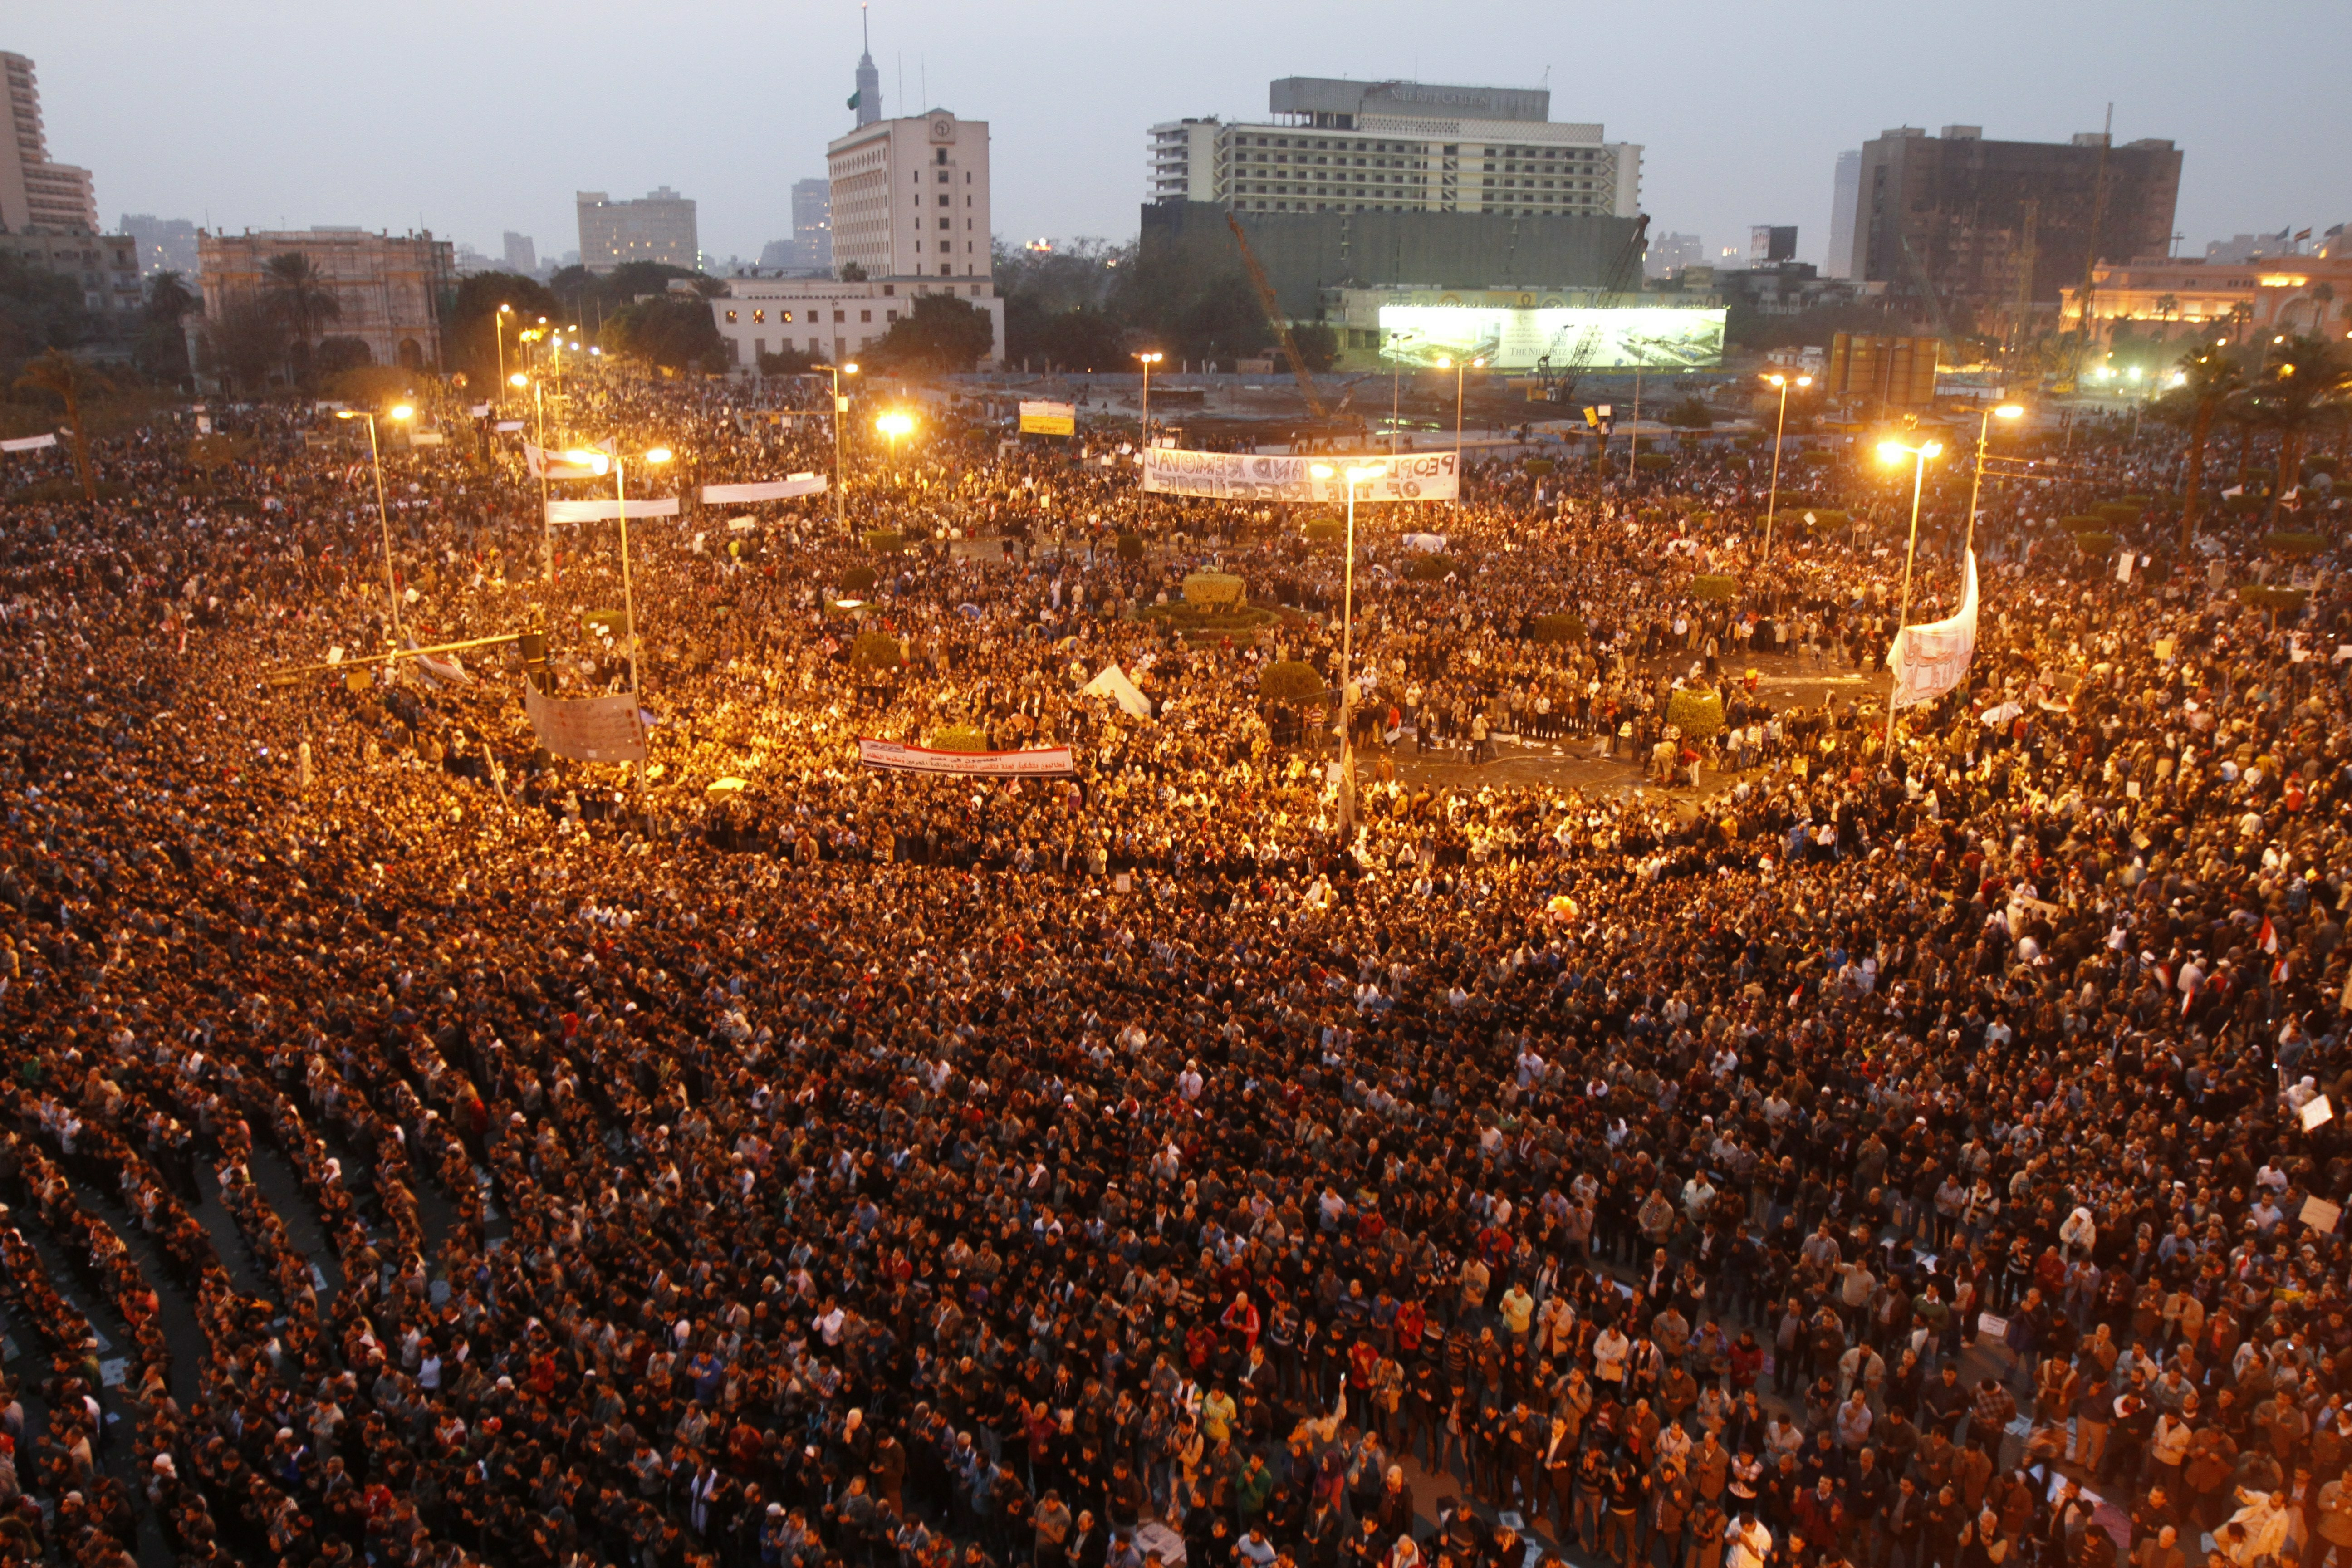 Egyptian Revolution Crowds in Tahrir Square